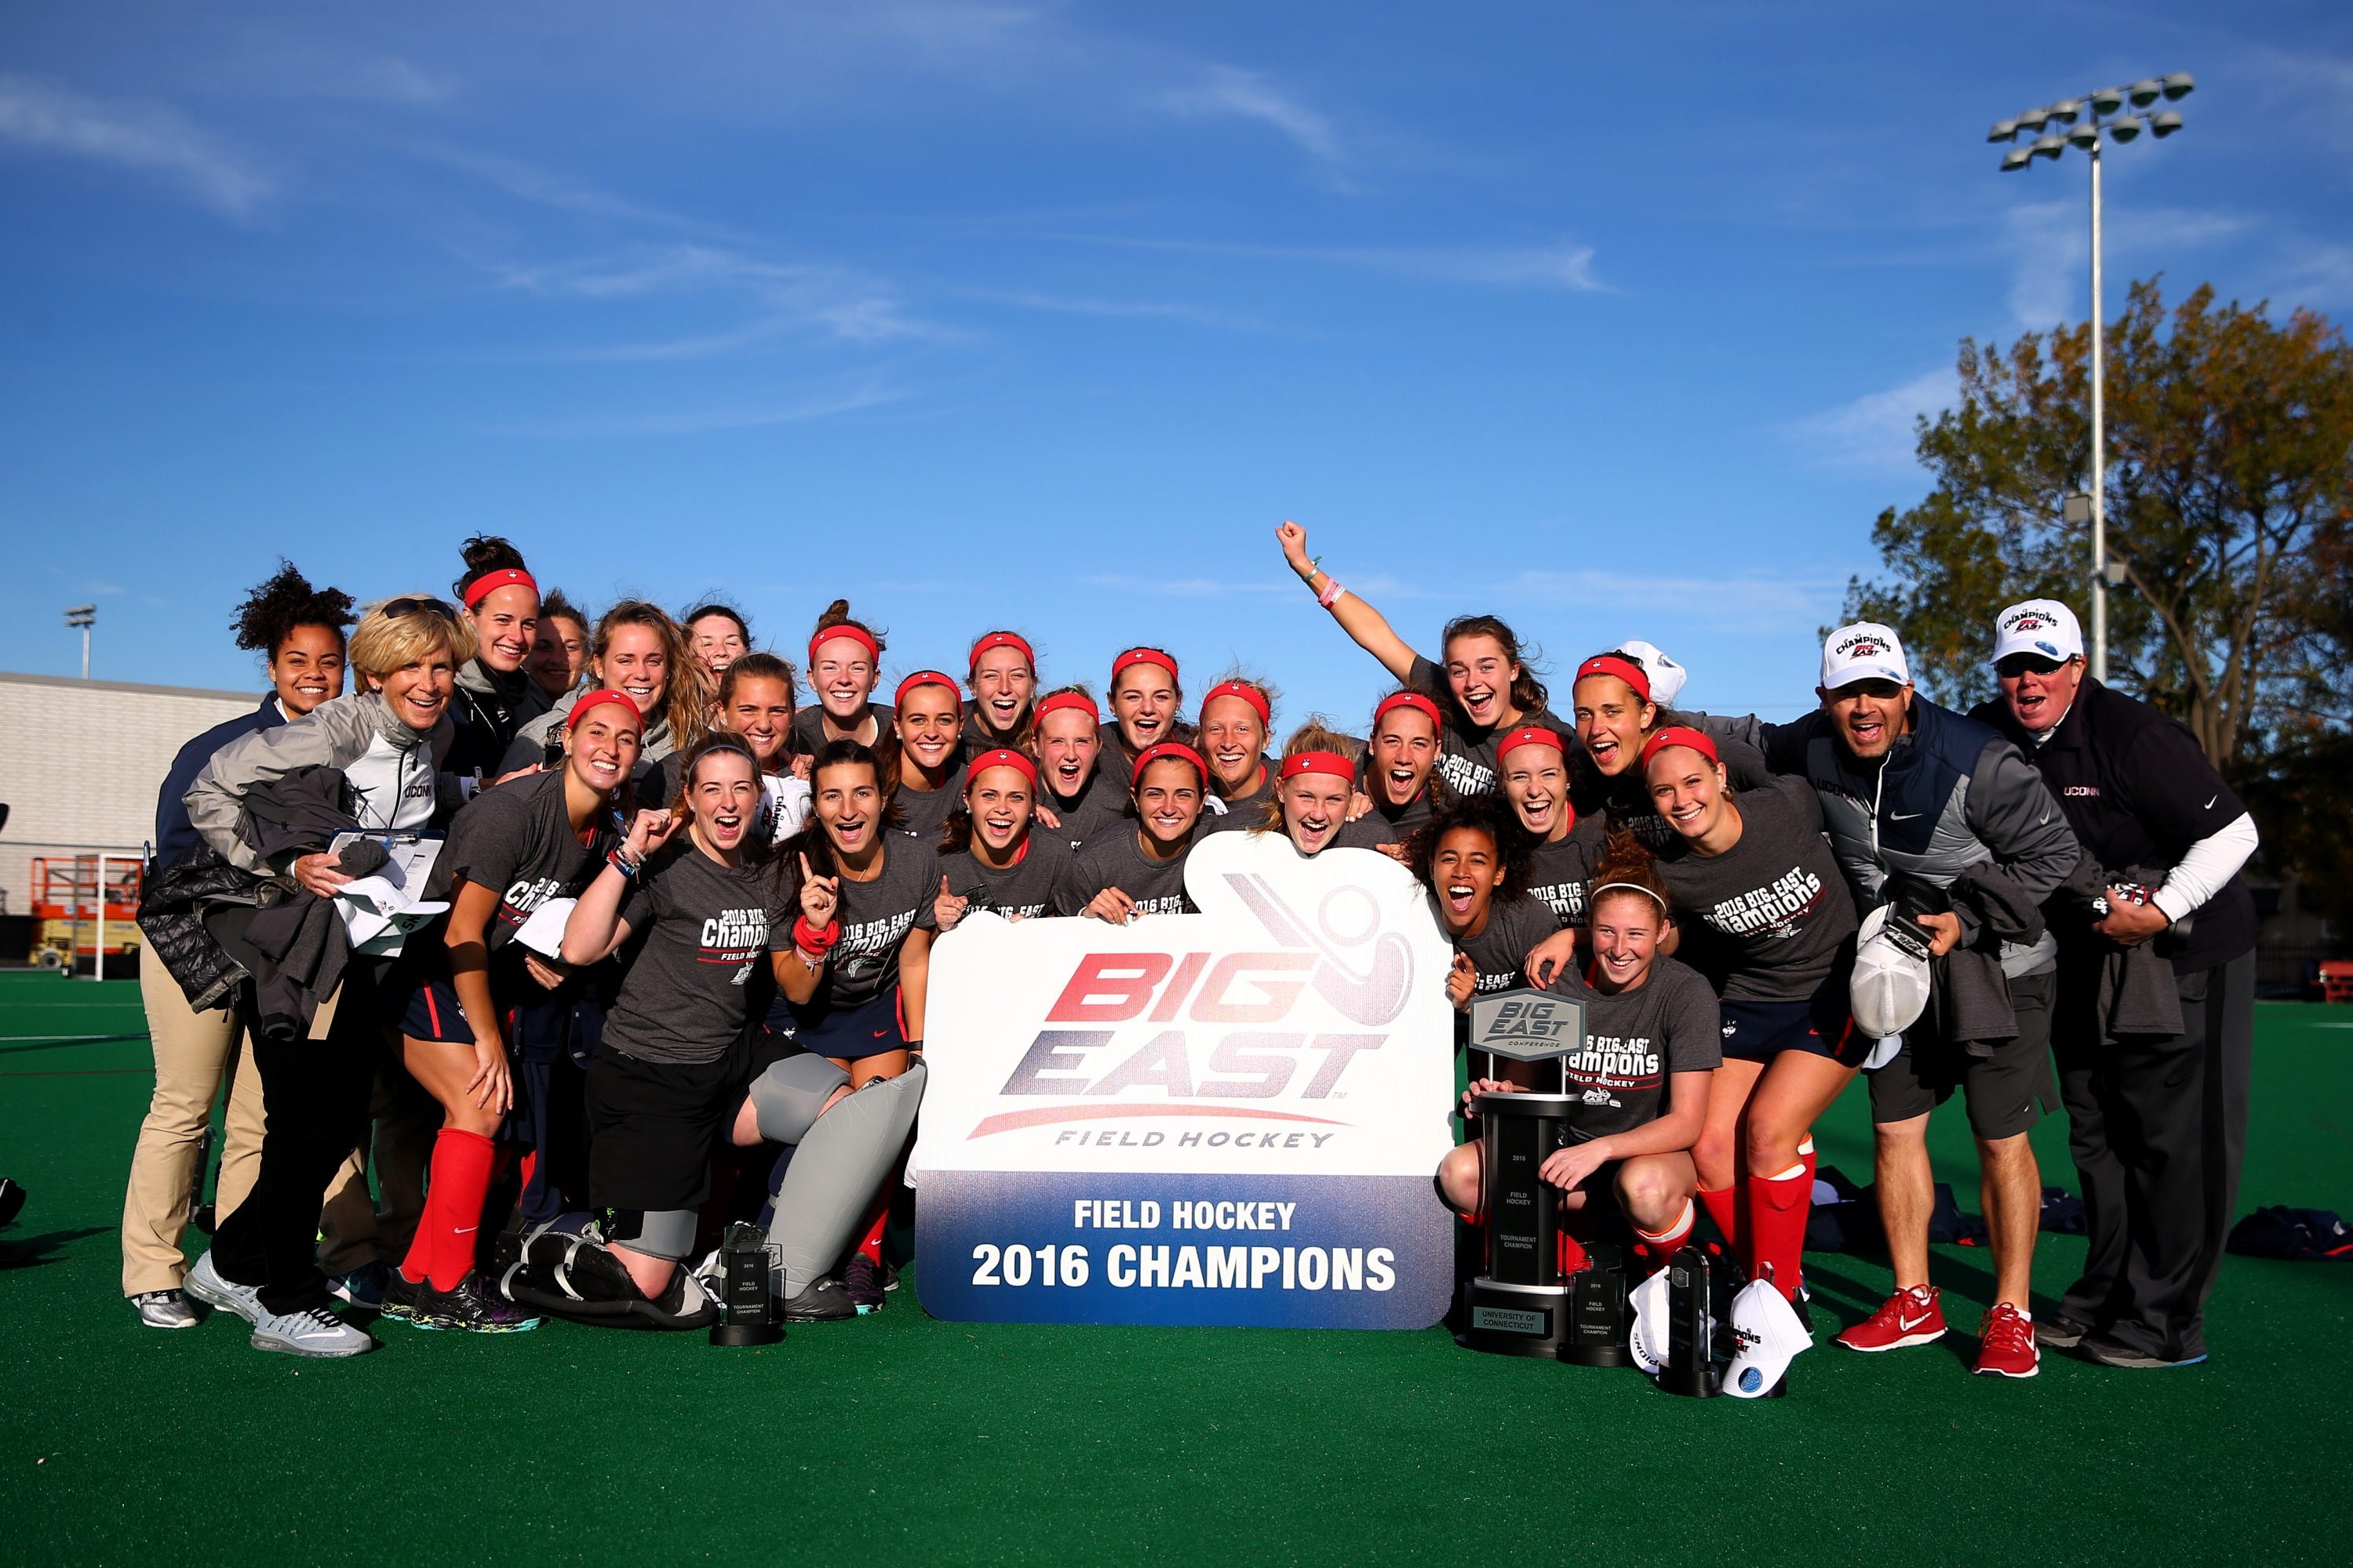 UConn defeated Liberty 3-2 to claim its fifth-straight Big East Tournament title, and will go on to play Boston College in the first round of the NCAA Tournament on Saturday. (Courtesy of Big East)